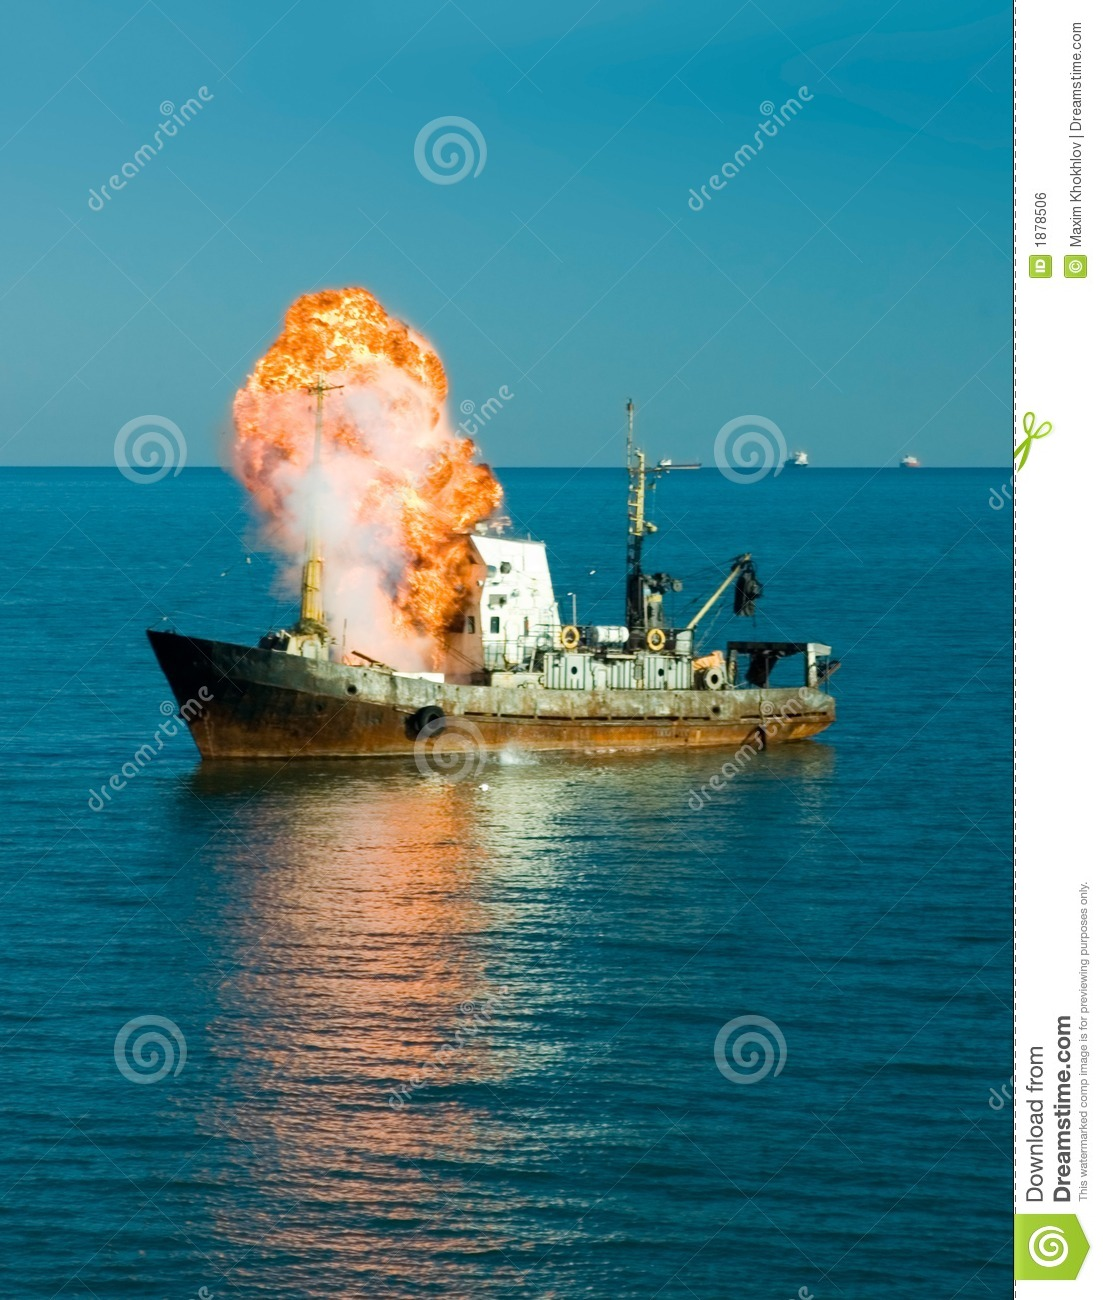 Explosion Of The Ship Royalty Free Stock Image - Image: 1878506